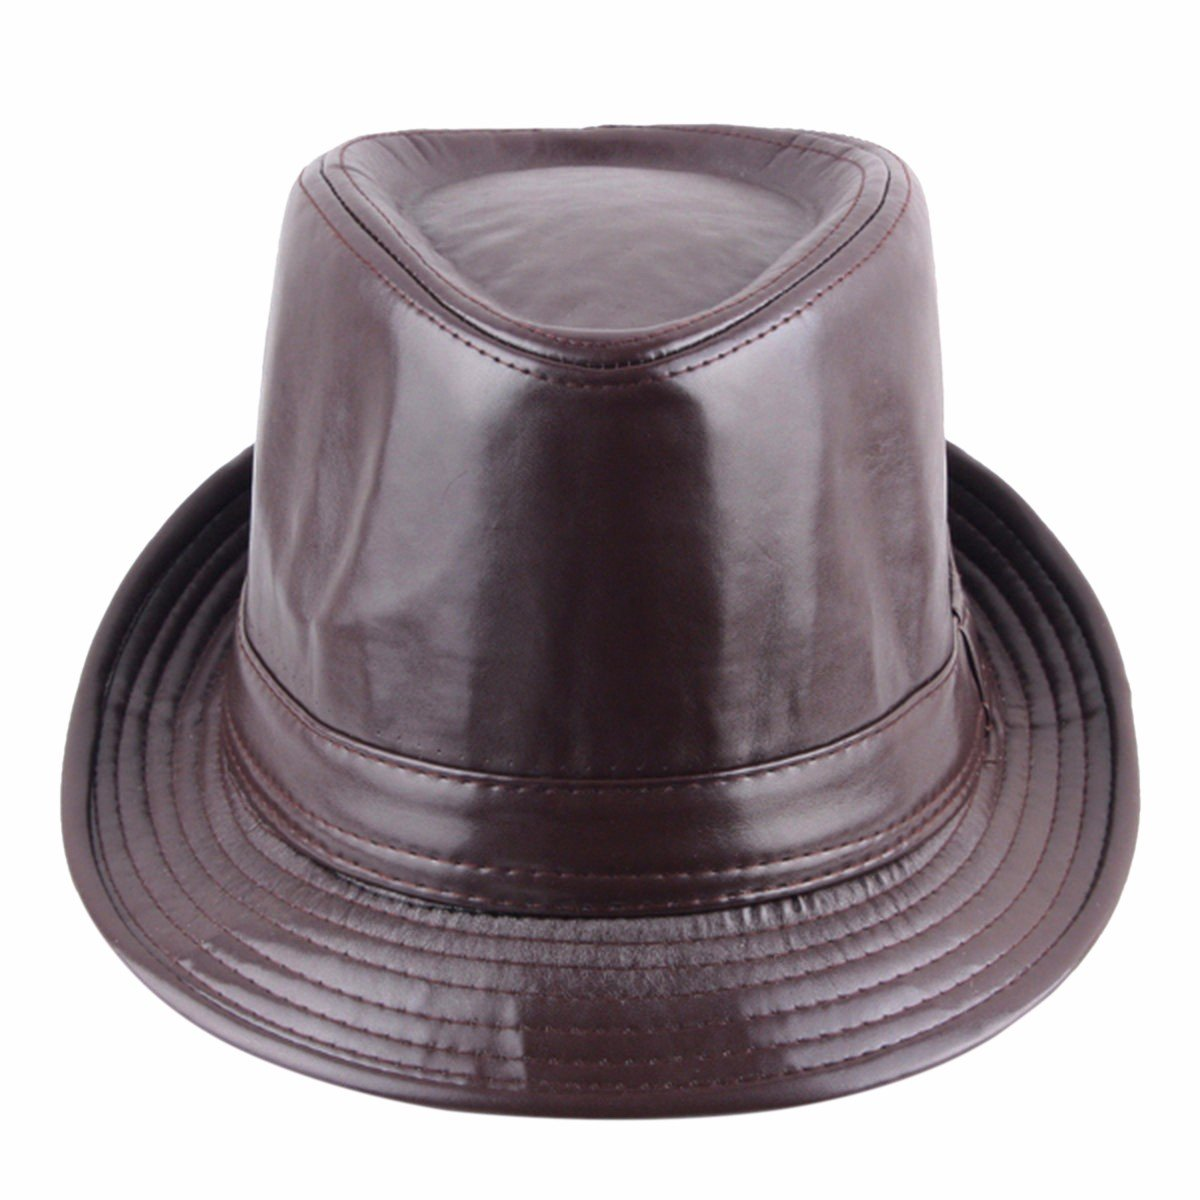 Samtree Fedora Hats for Women Men da06ea6a2760